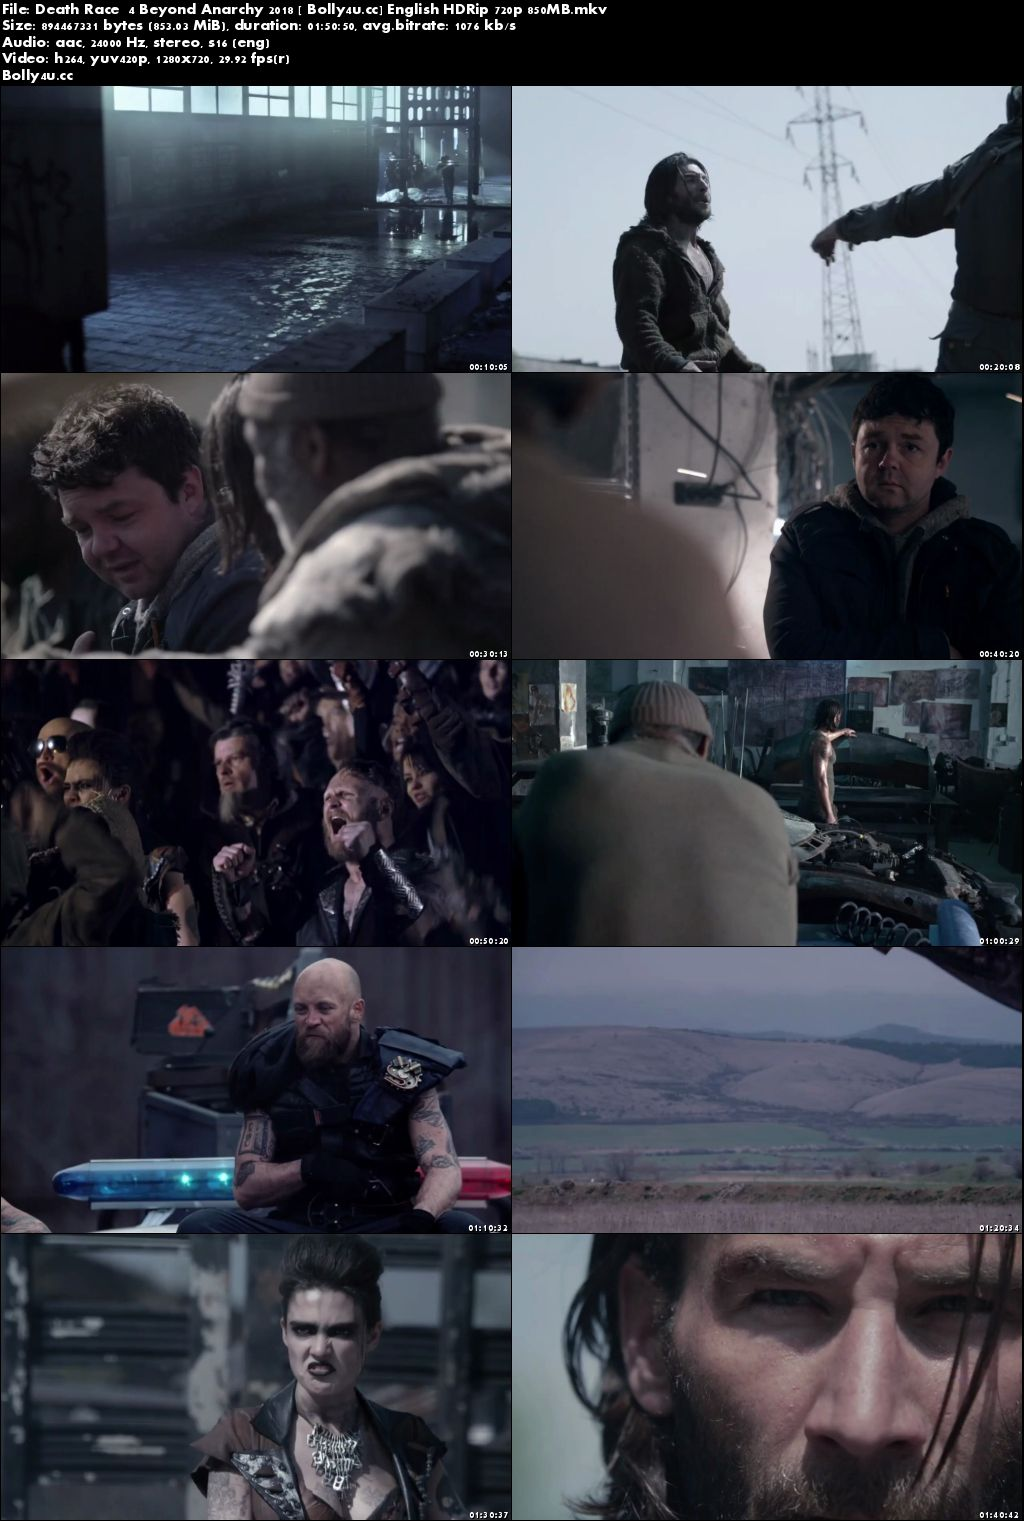 Death Race 4 Beyond Anarchy 2018 HDRip 350MB English 480p